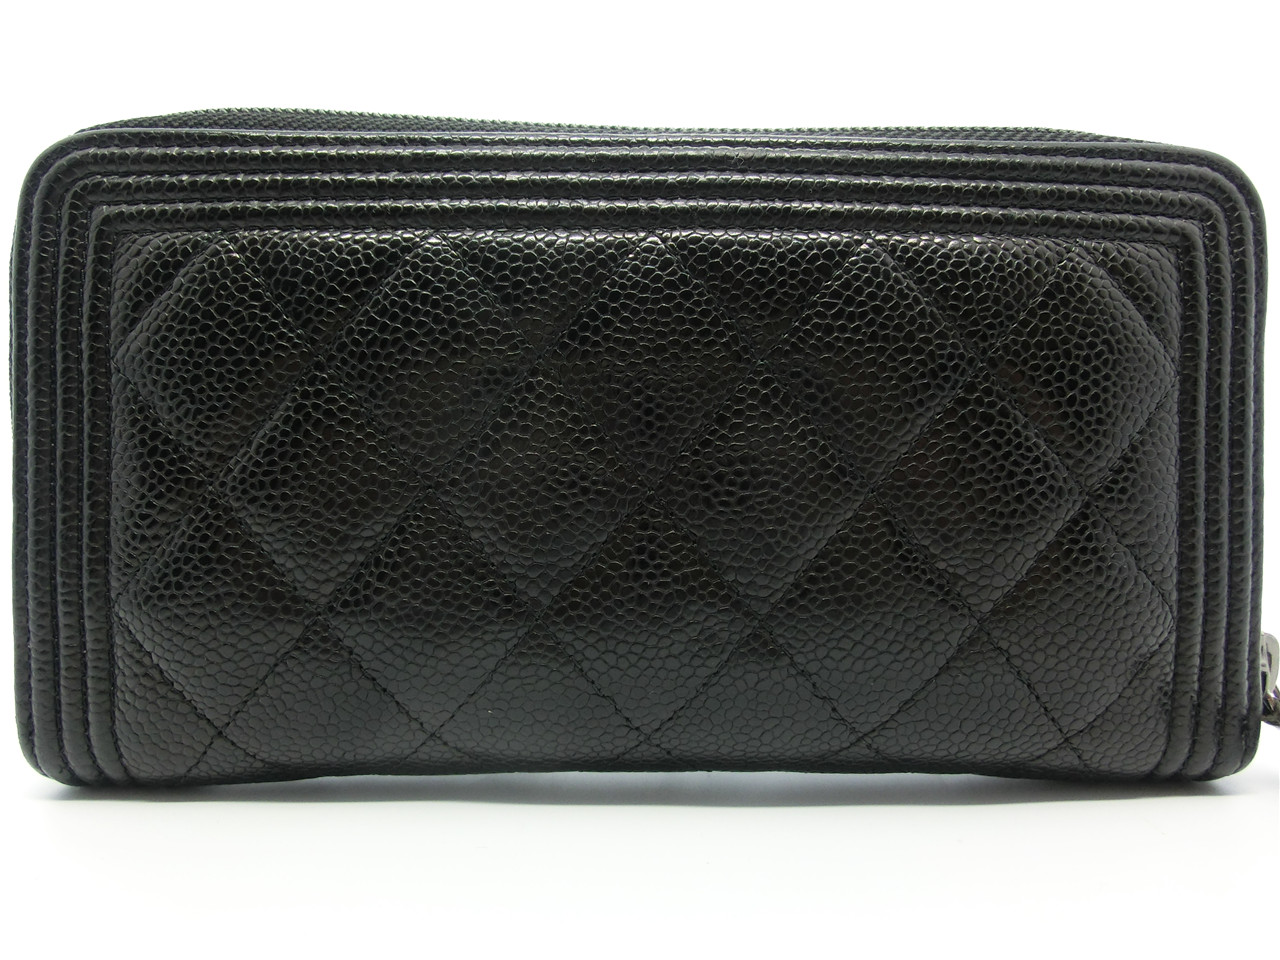 e47779a7a17f33 AUTHENTIC BOY CHANEL Black Quilted Caviar Leather Zip Around Wallet  17031391CK